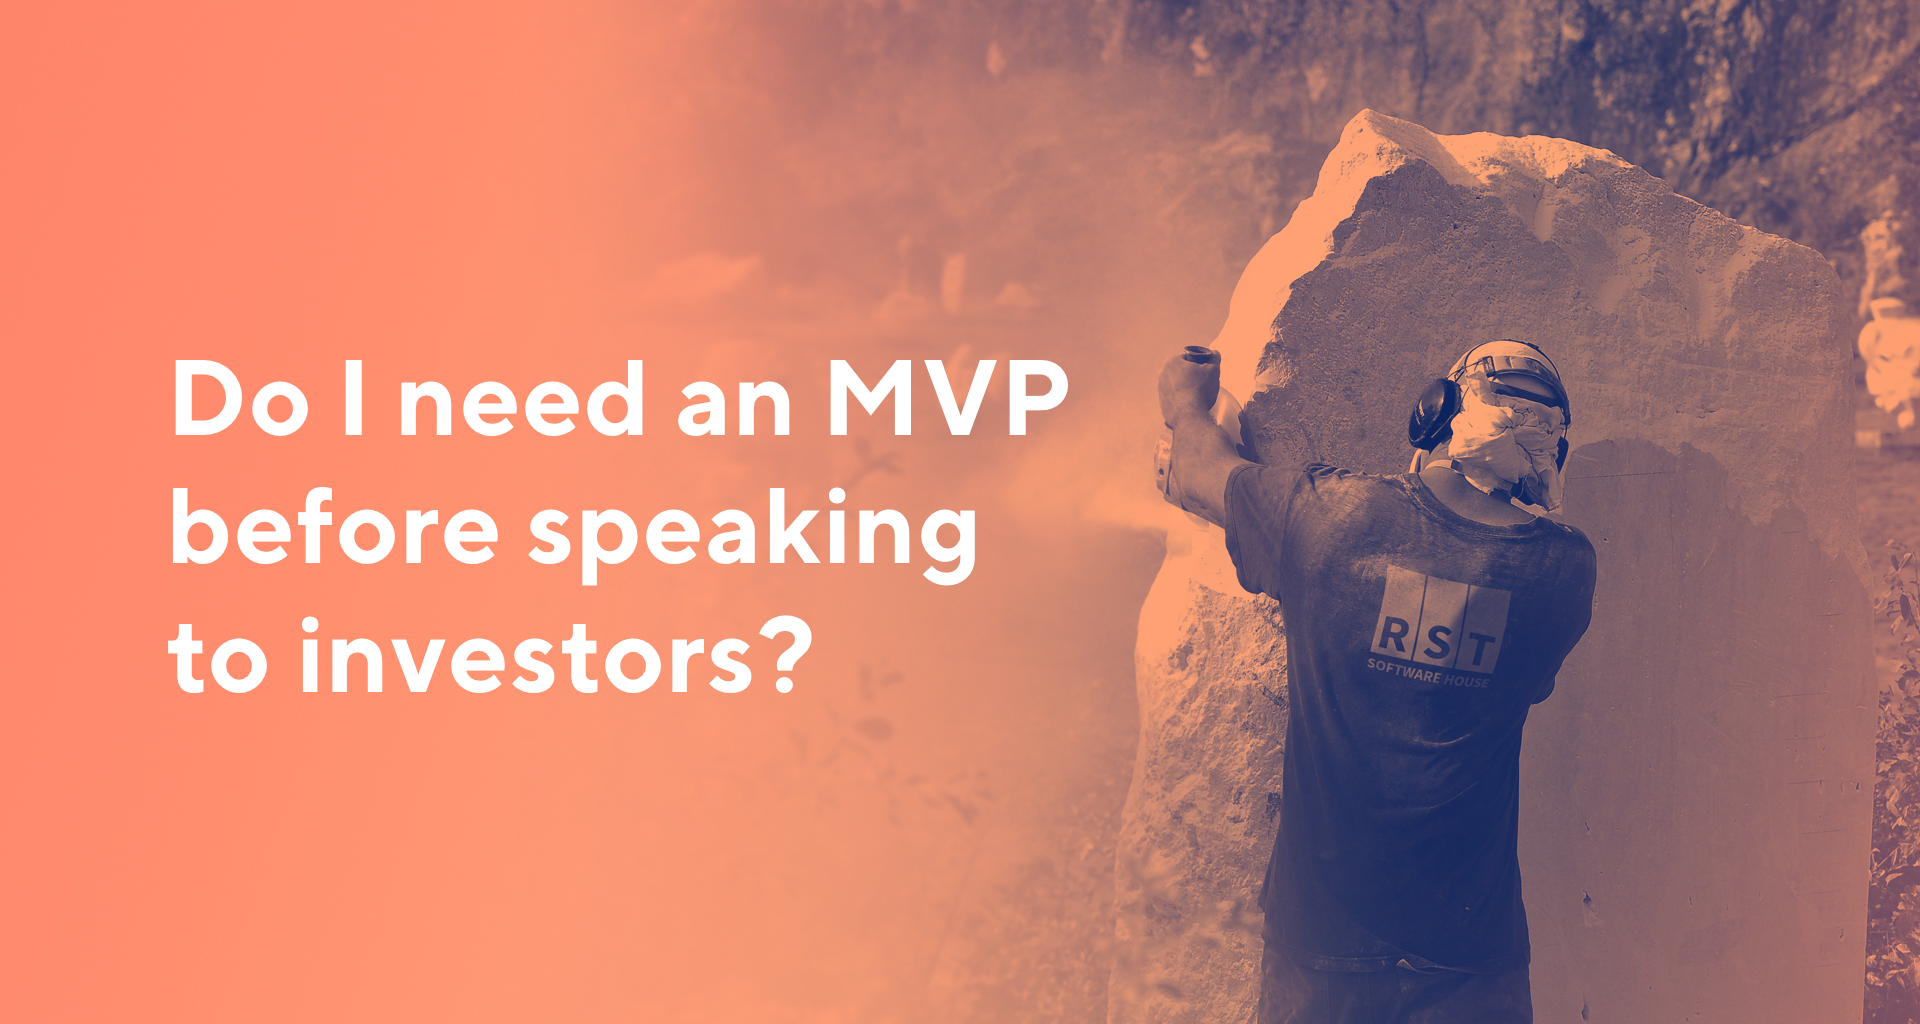 Do I need an mvp for tech startup before speaking to investors?